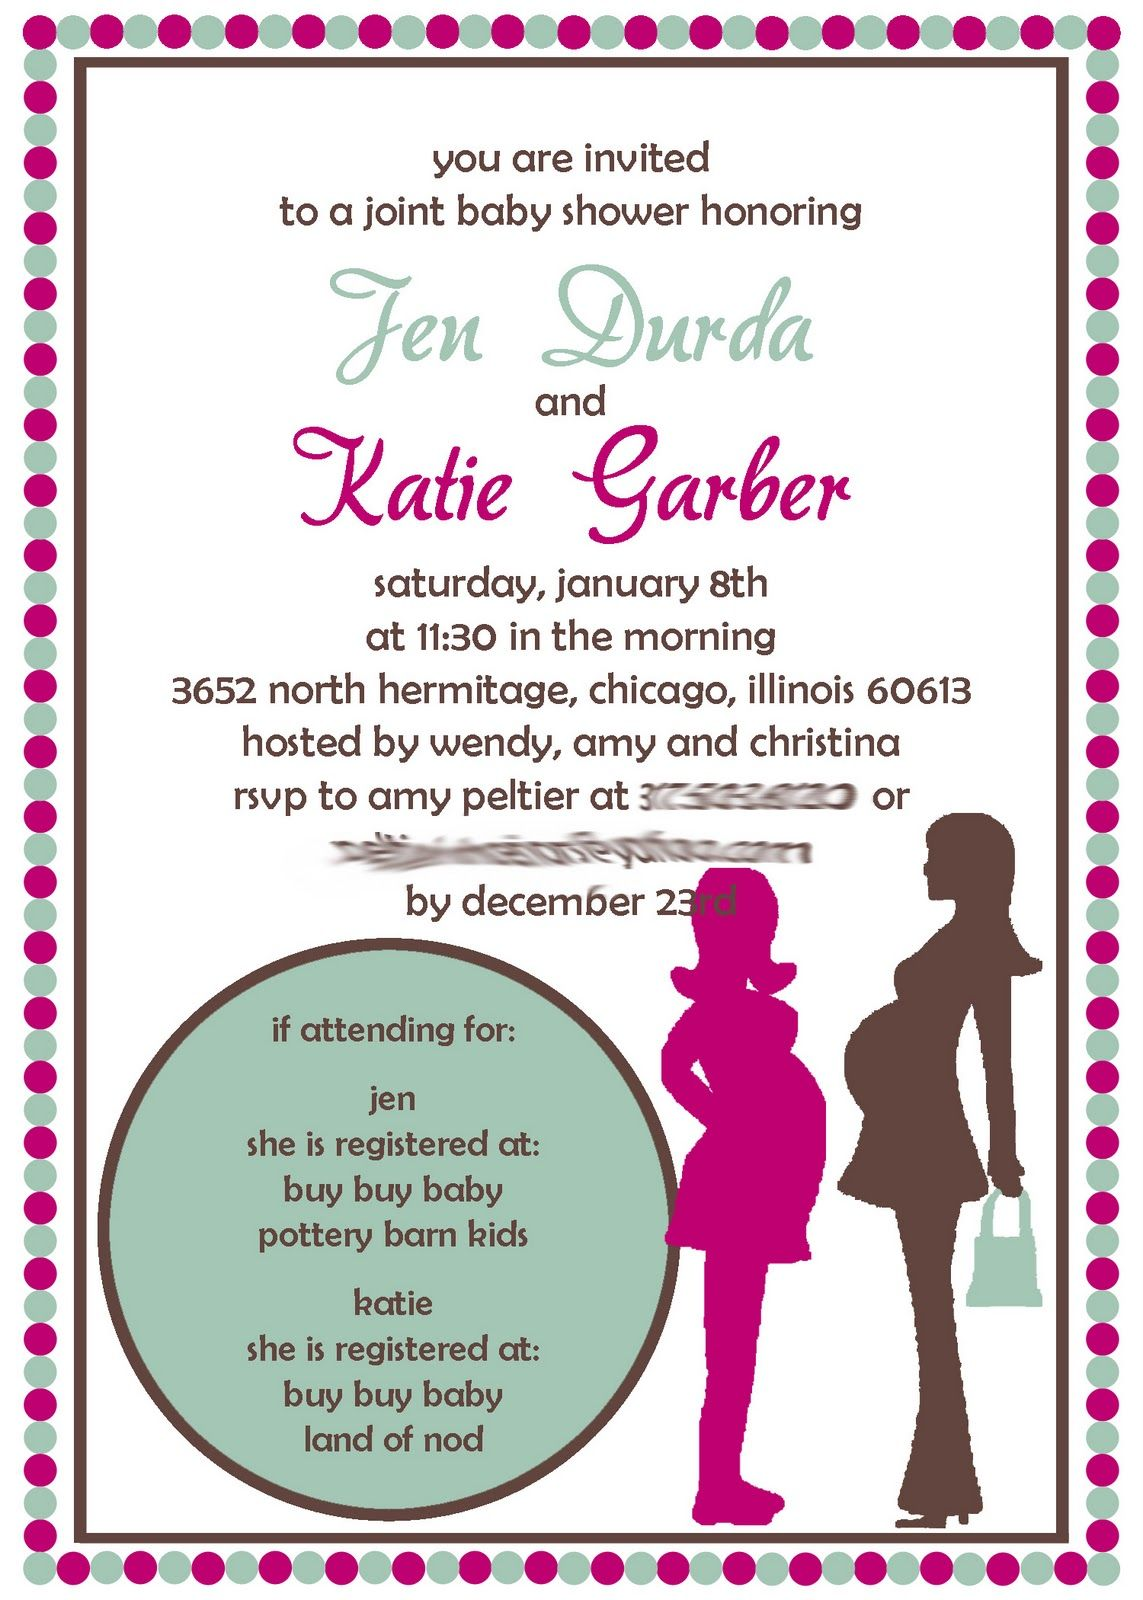 Pin By Shannon Stockton On Kelly And Brandi Baby Shower Joint Baby Showers Baby Shower Invitation Poems Double Baby Showers